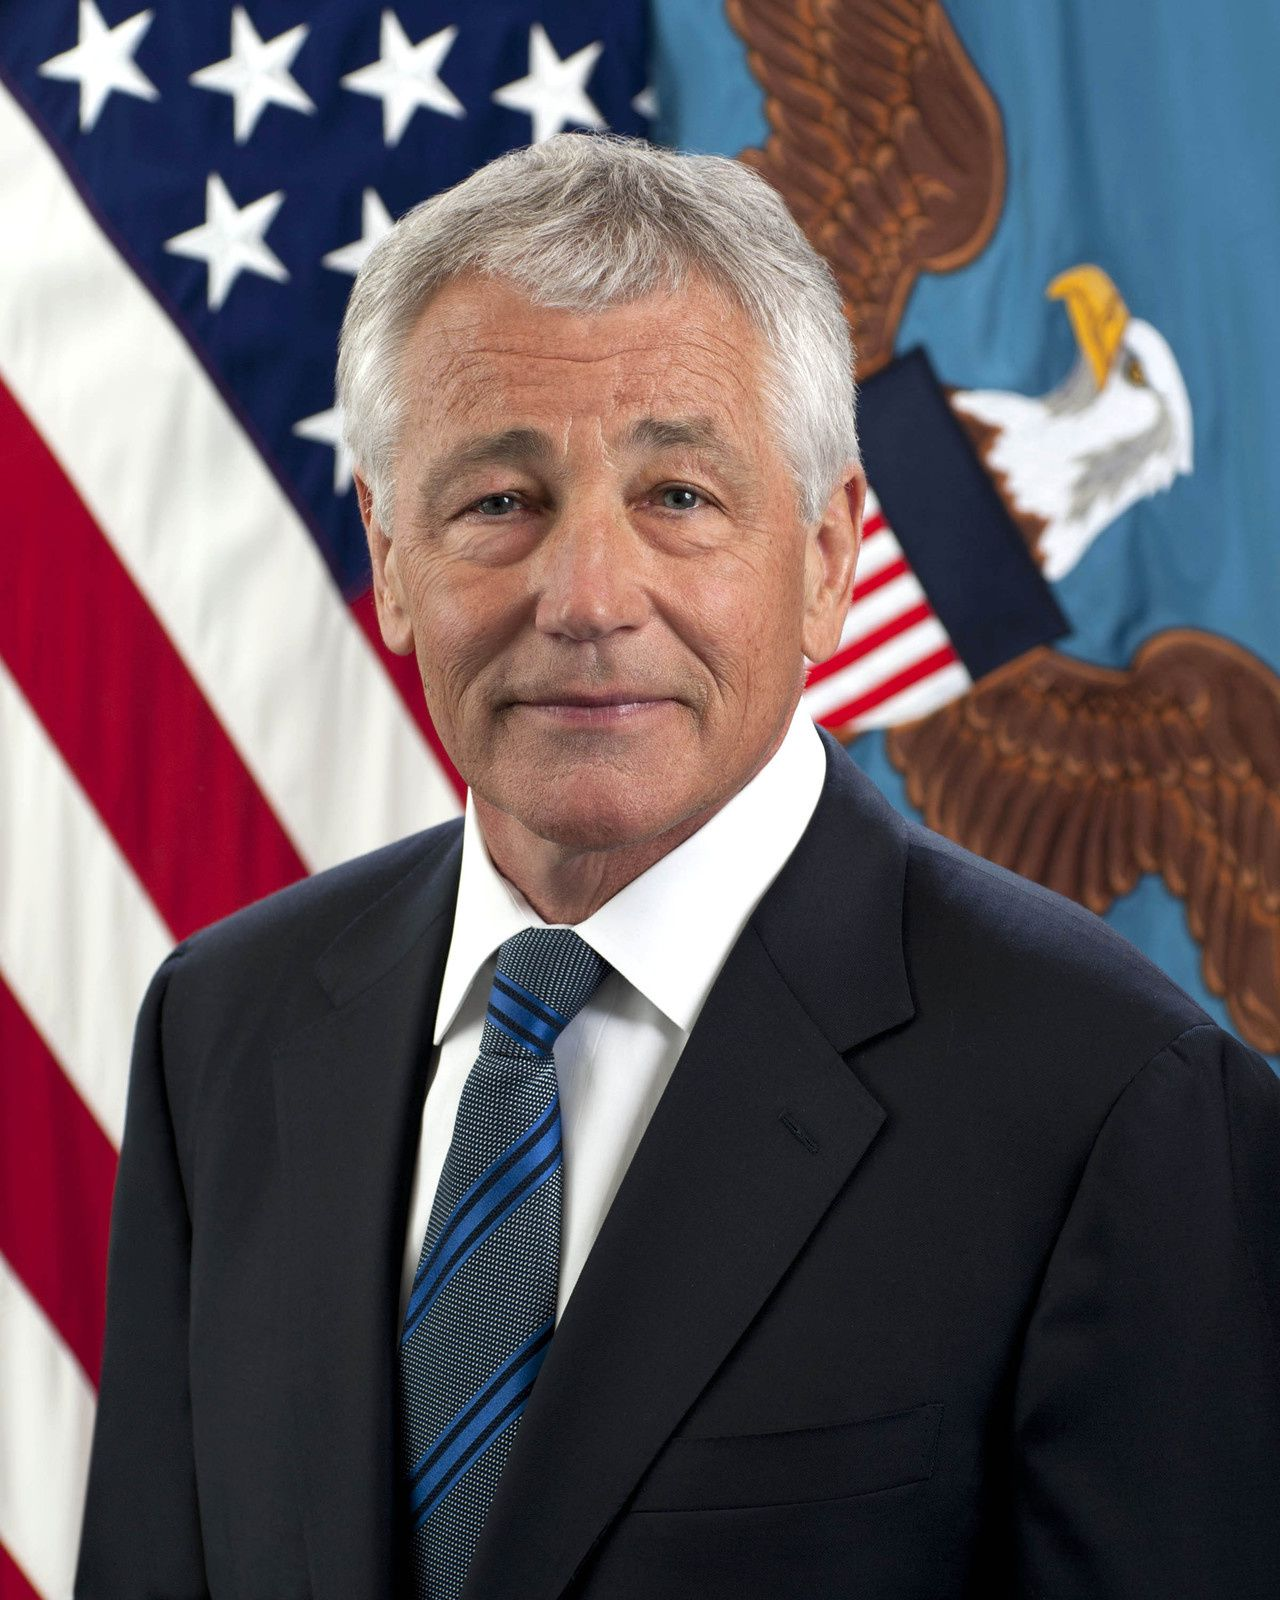 Hagel Launches Plan To Maintain High-Tech Military